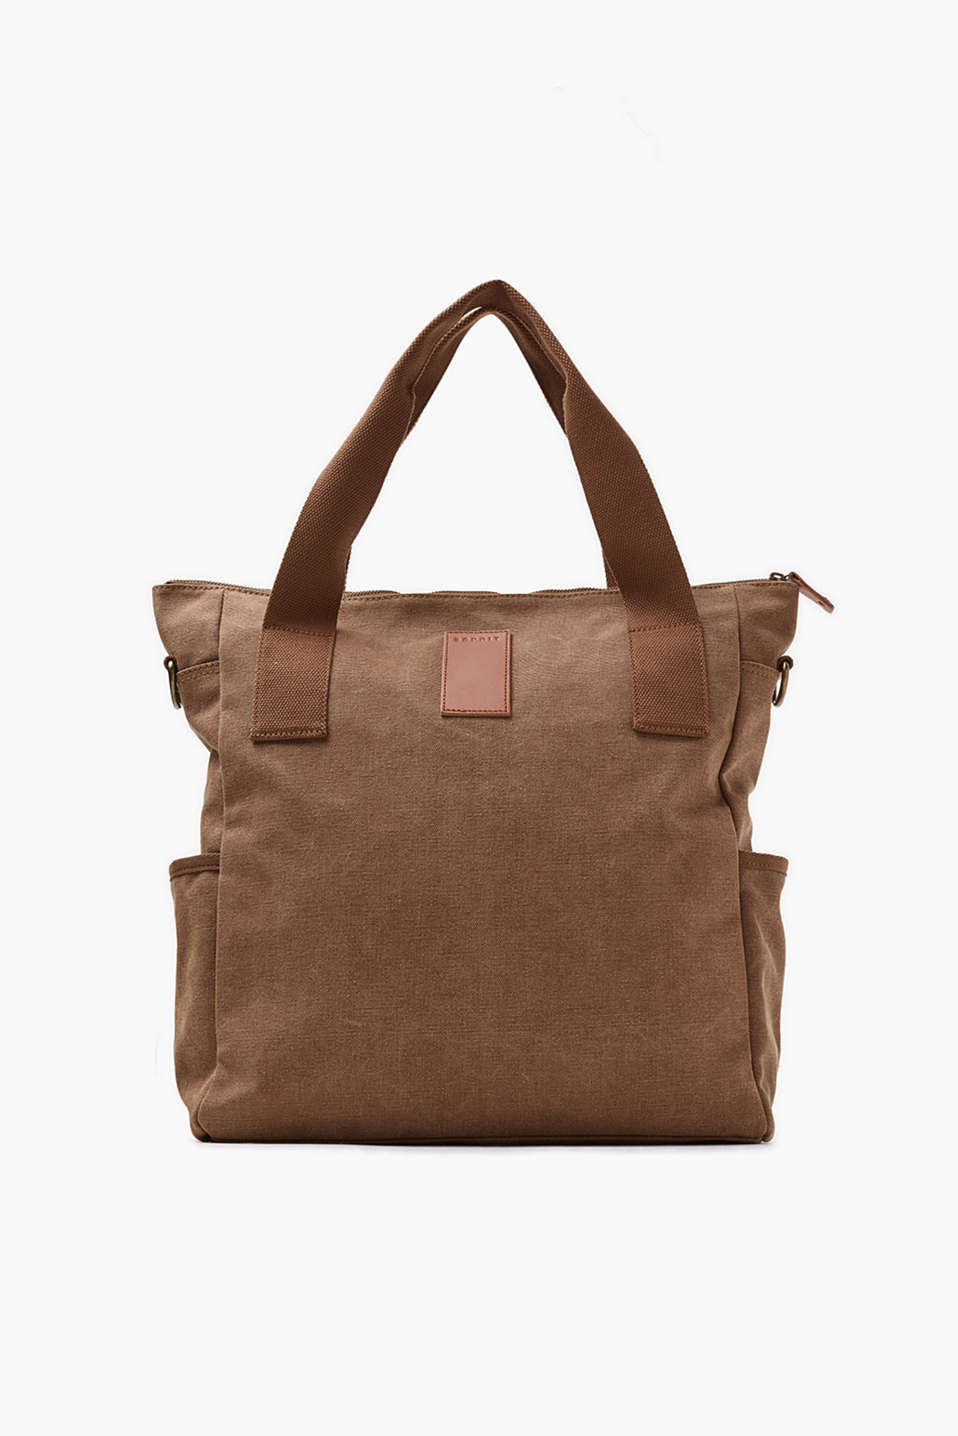 Messenger bag with shoulder pockets and leather details, in pure cotton with a washed finish